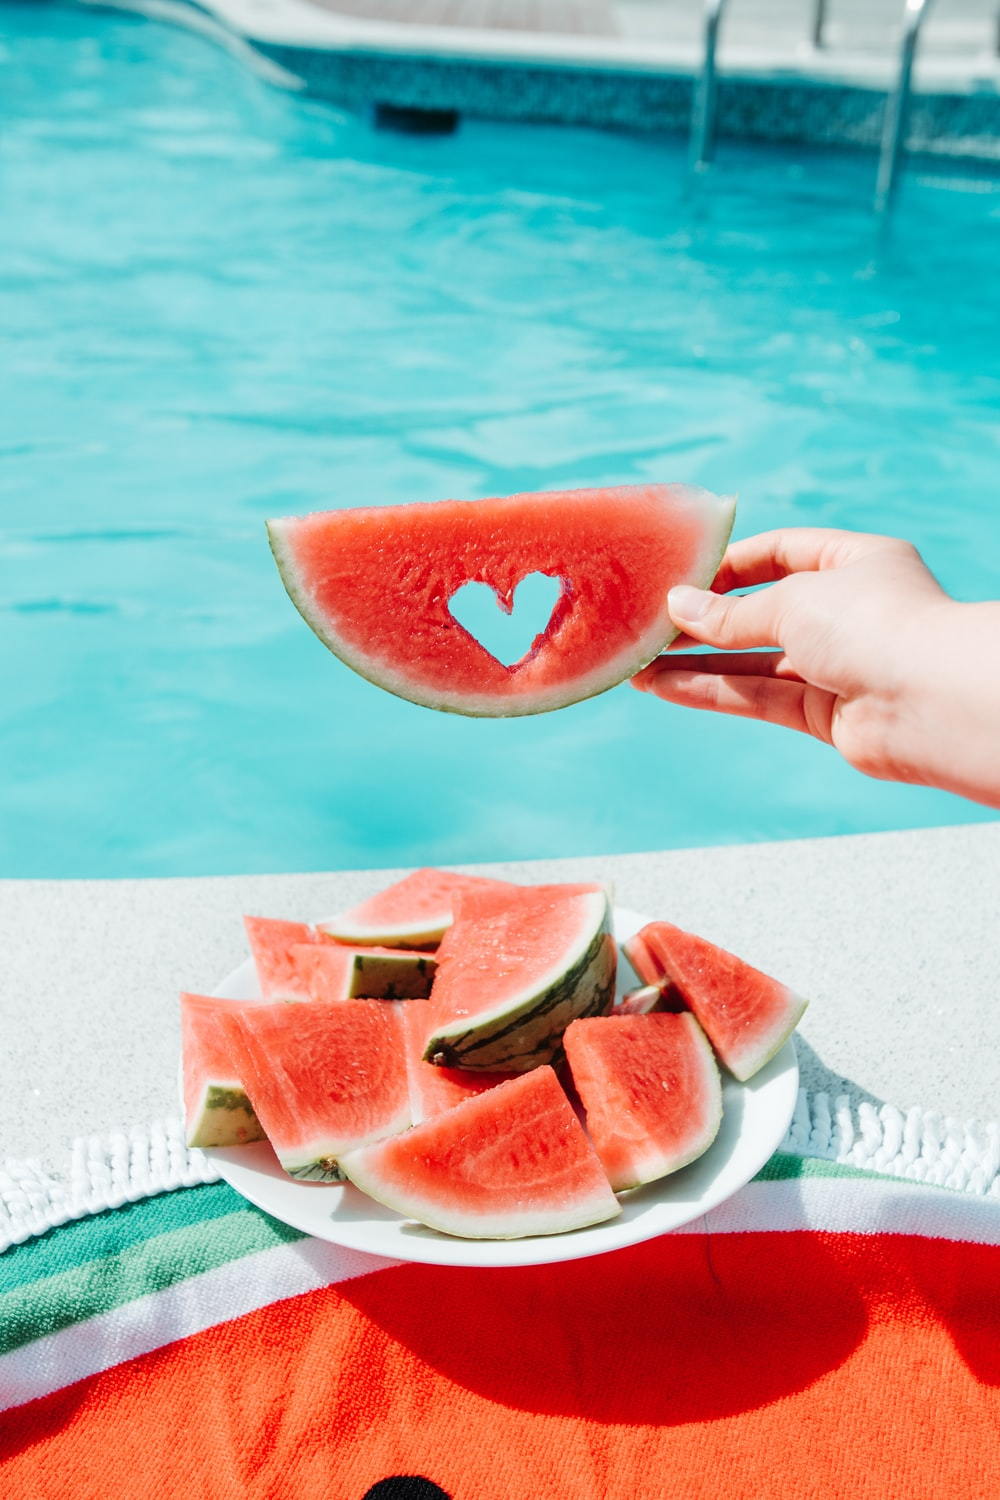 sliced watermelon on white paper